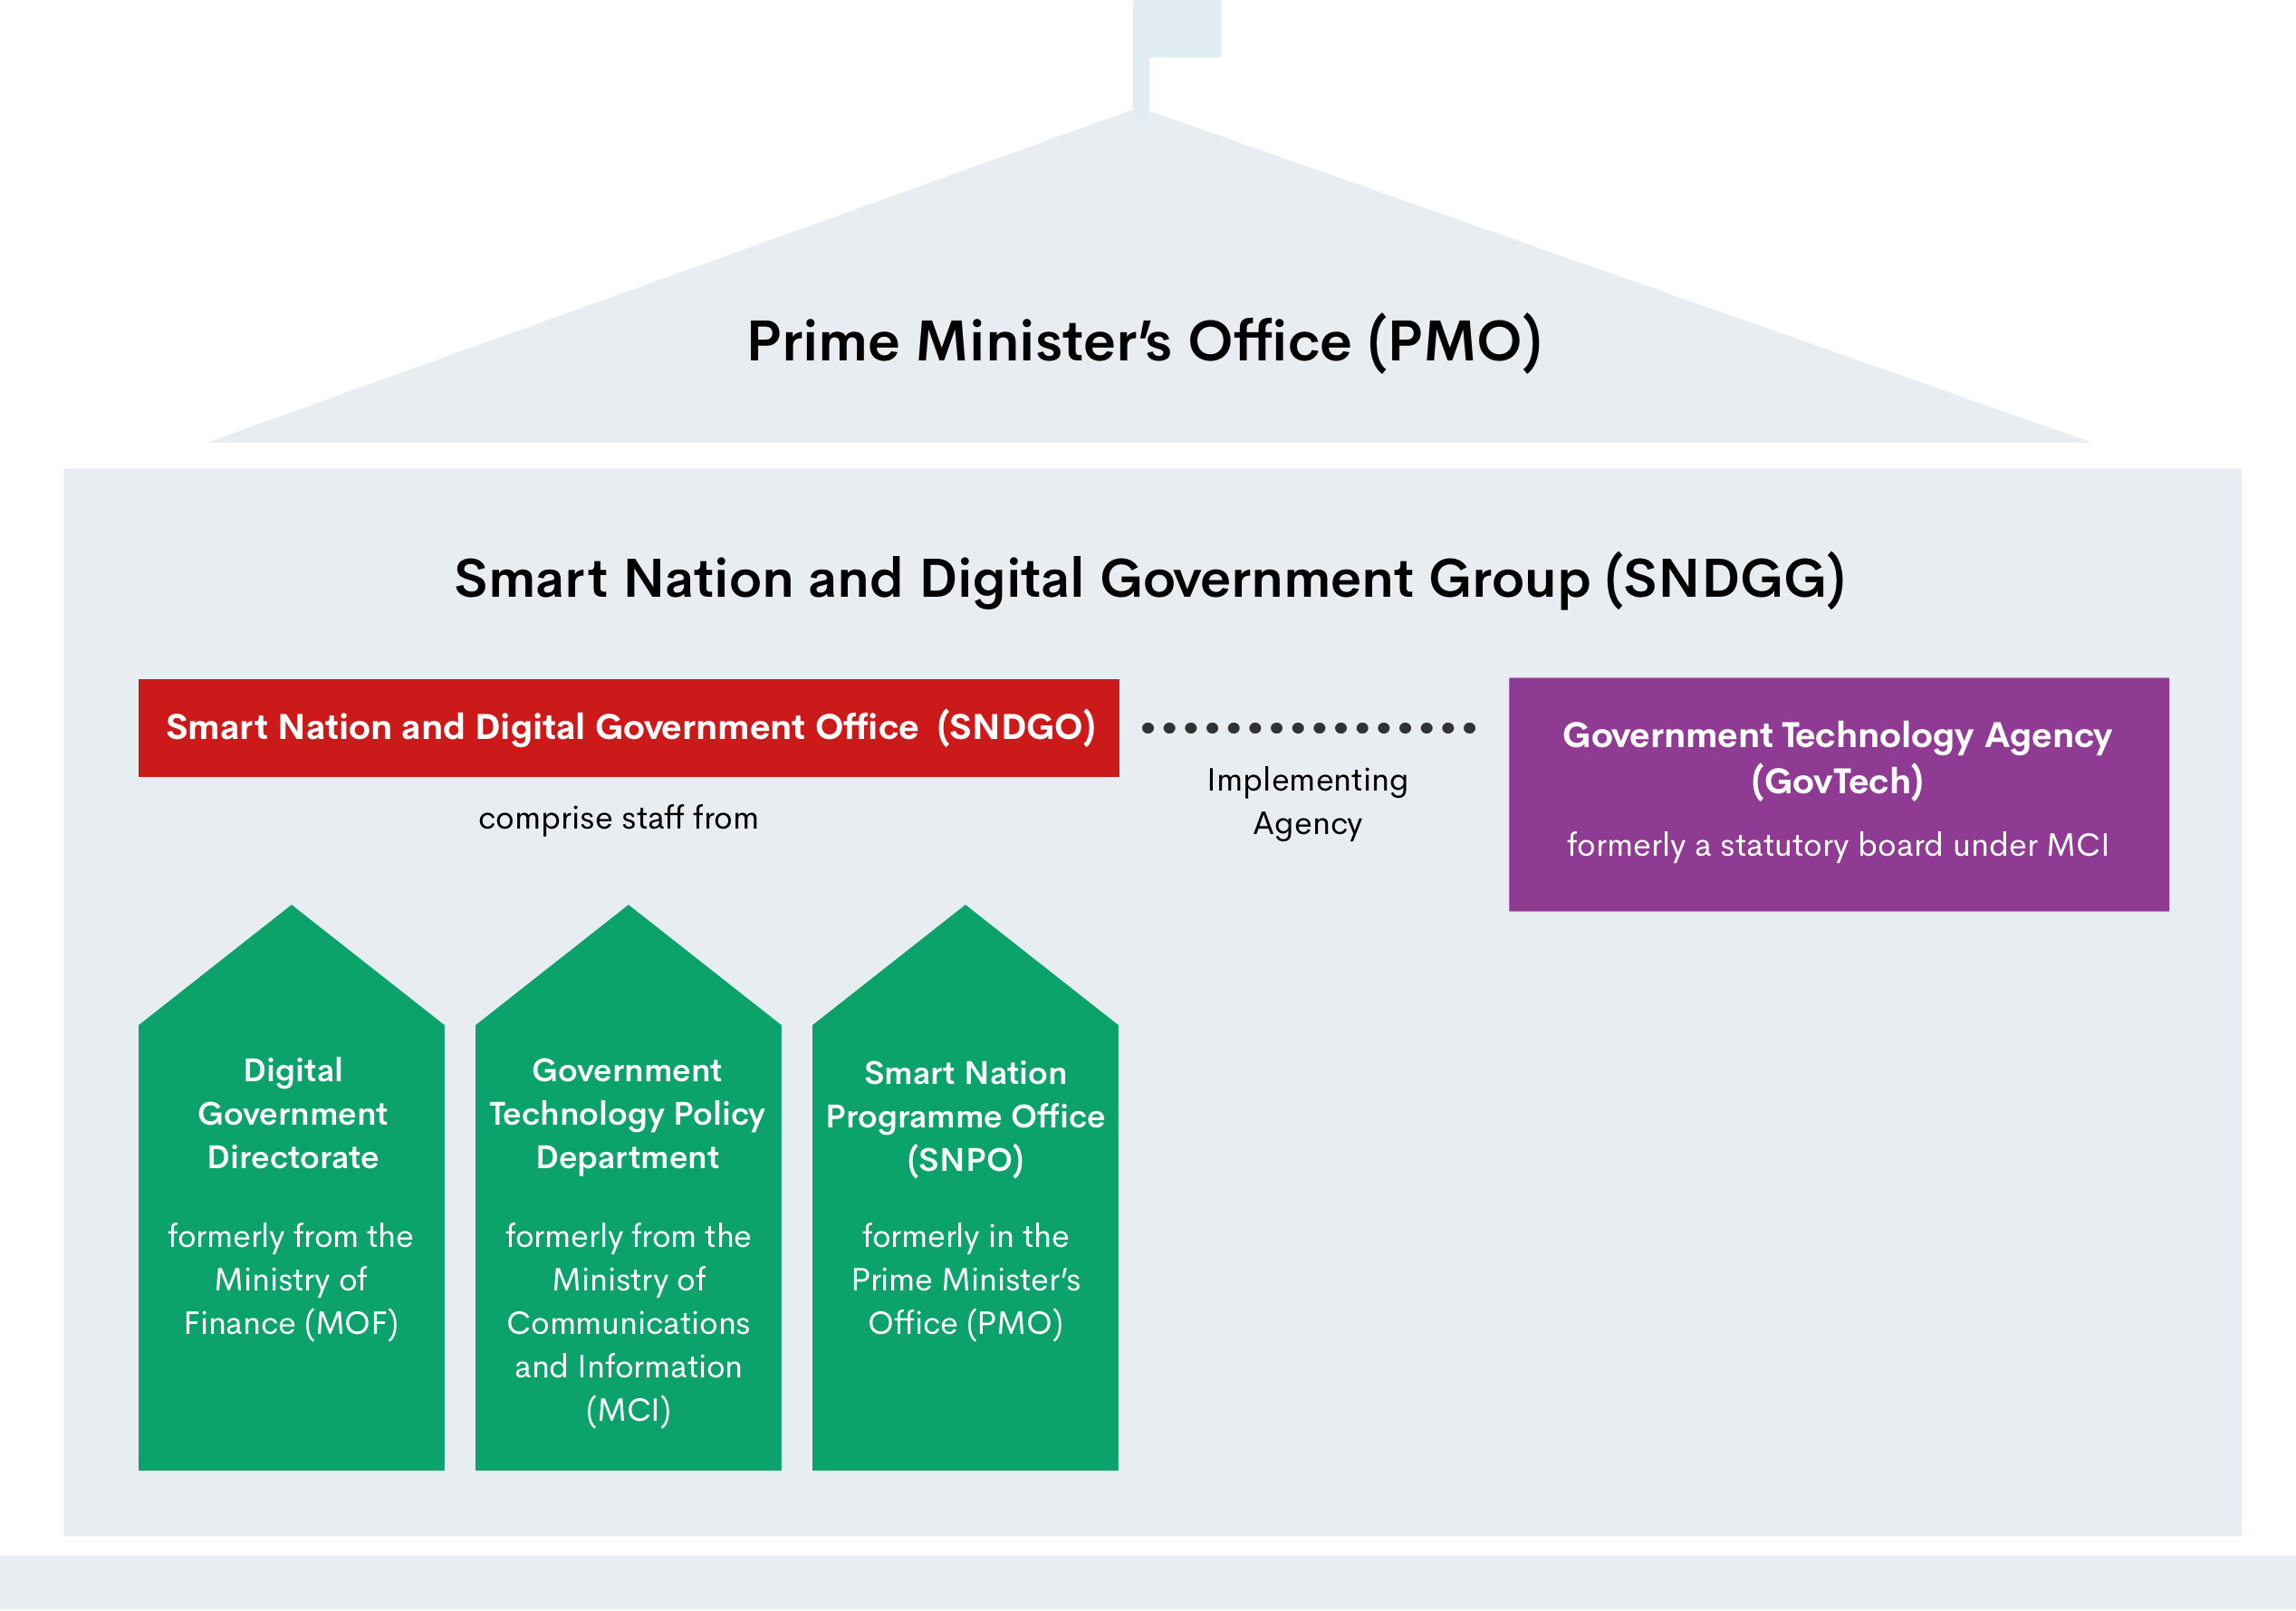 Organisational chart for Smart Nation and Digital Governance Group (SNDGG) in the Prime Minister Office (PMO)